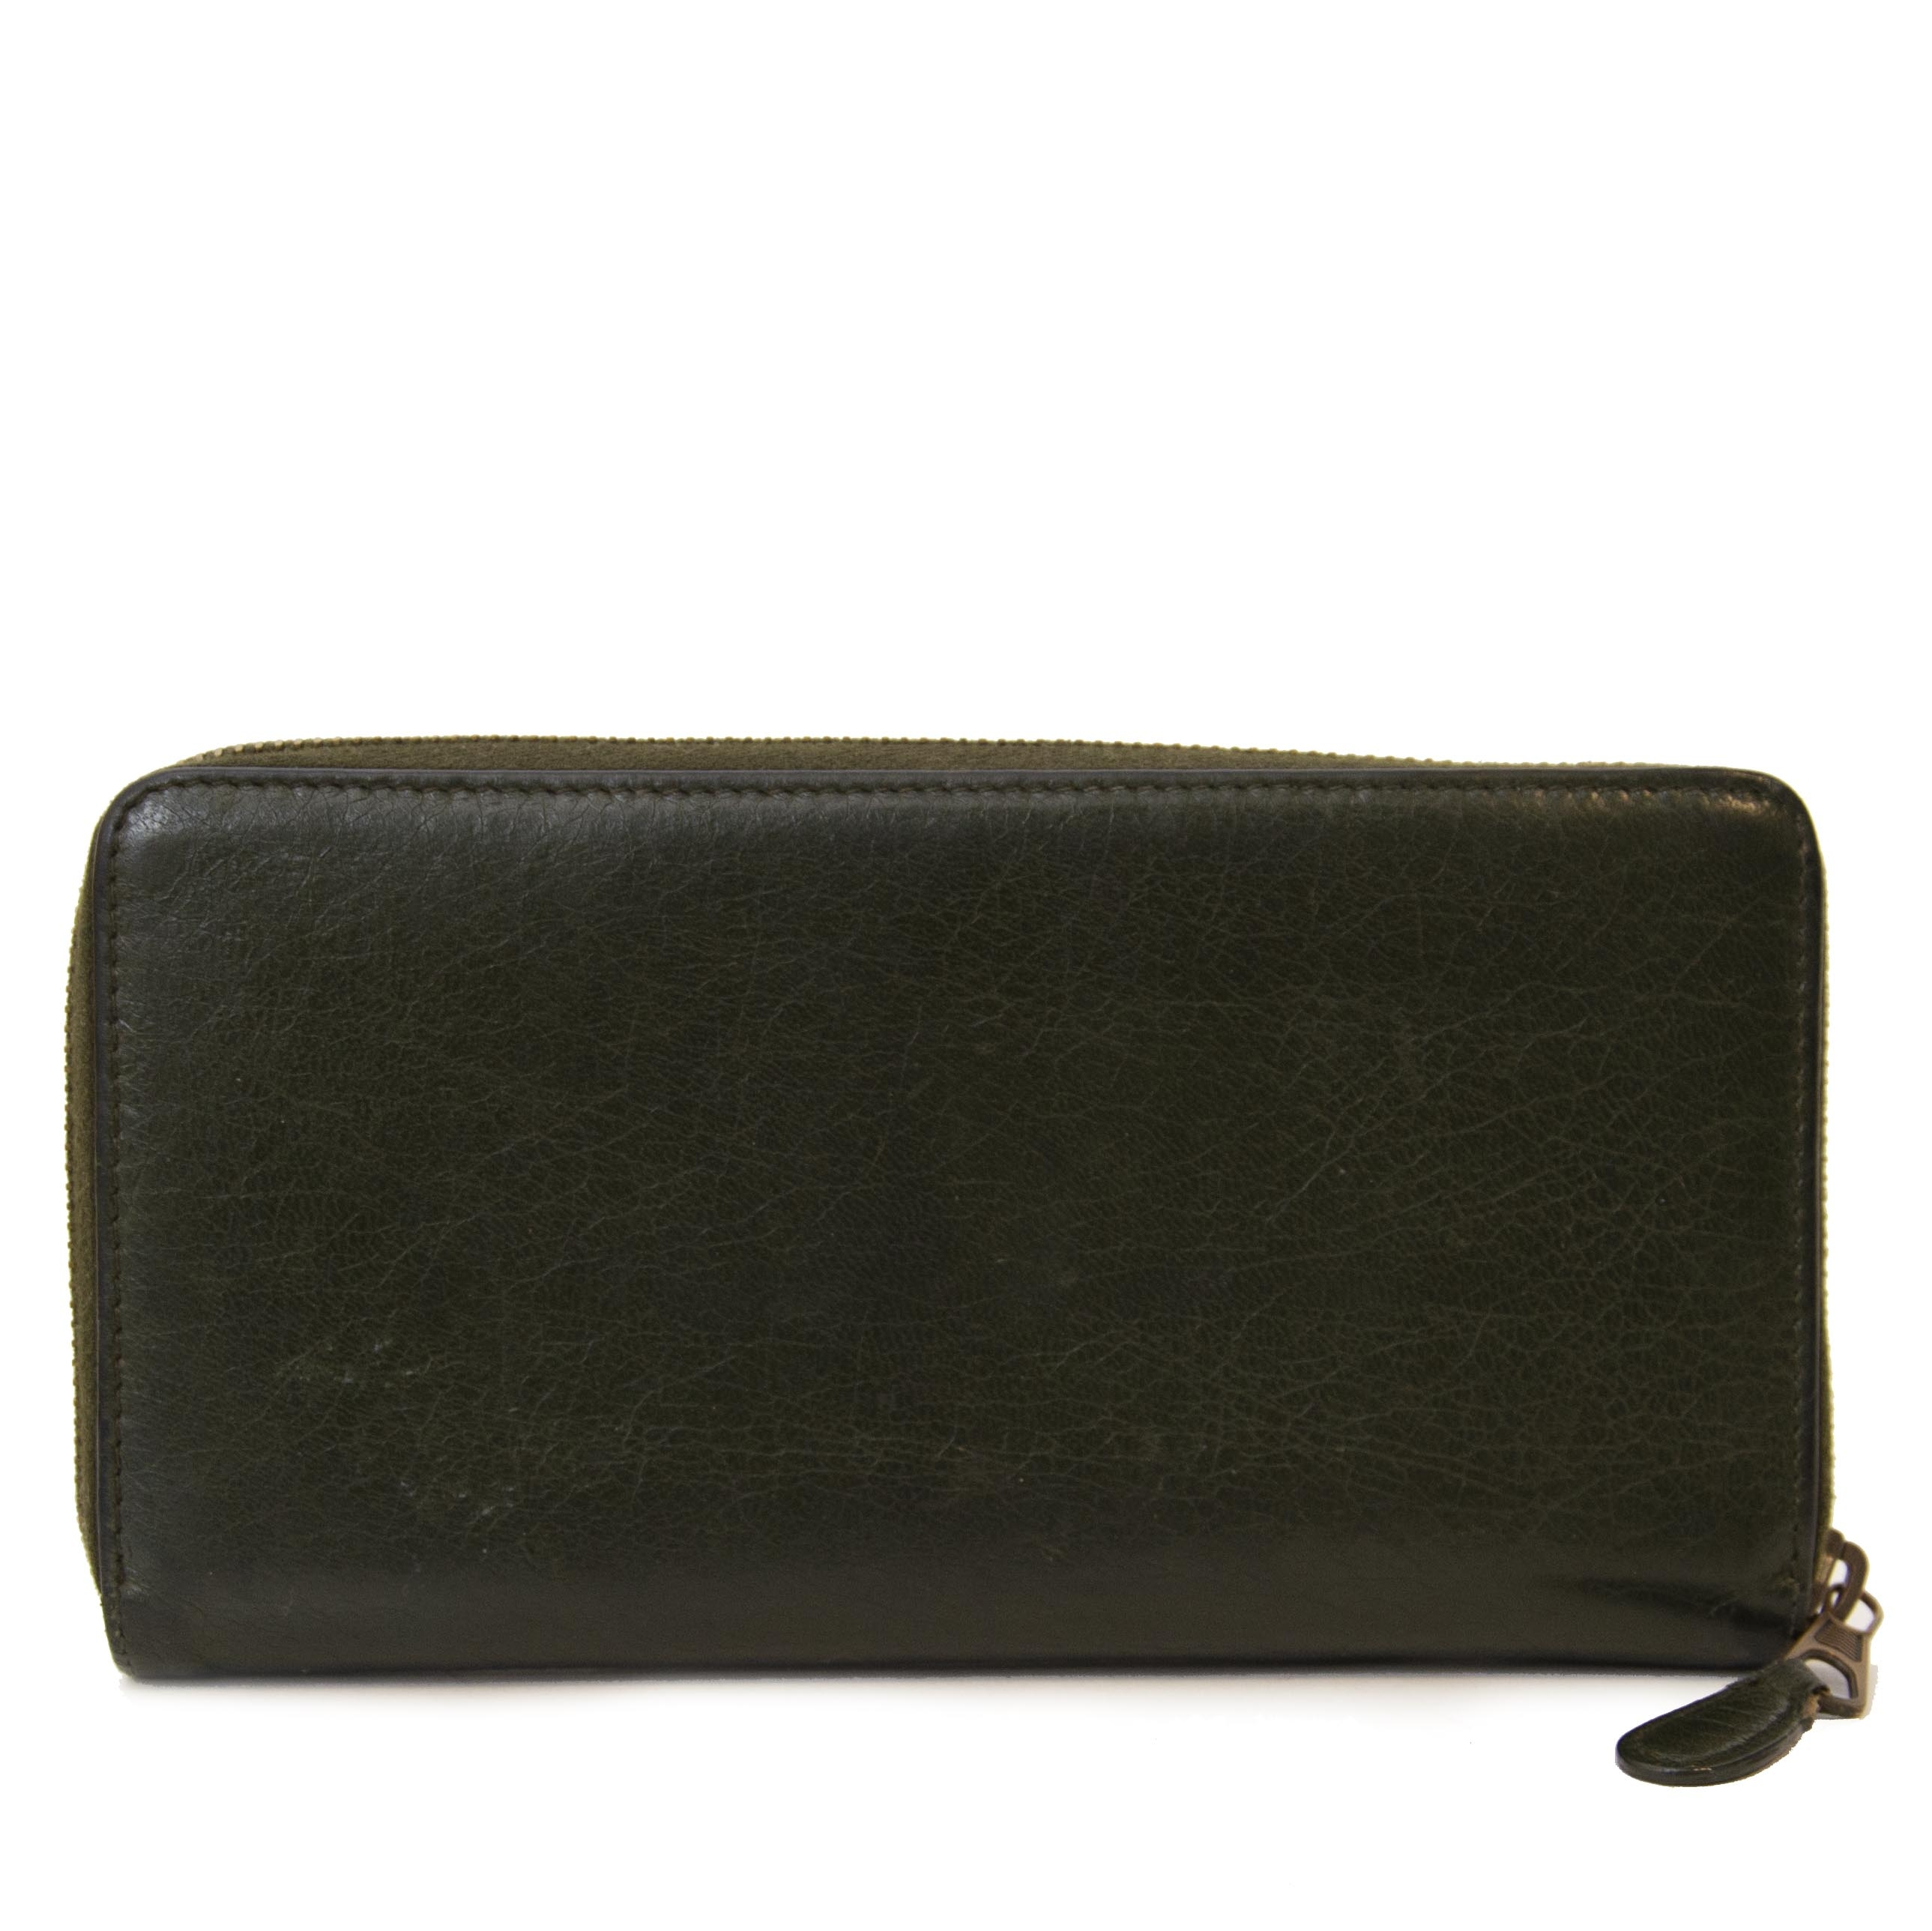 Authentieke tweedehands vintage Balenciaga Green Giant Continental Wallet koop online webshop LabelLOV